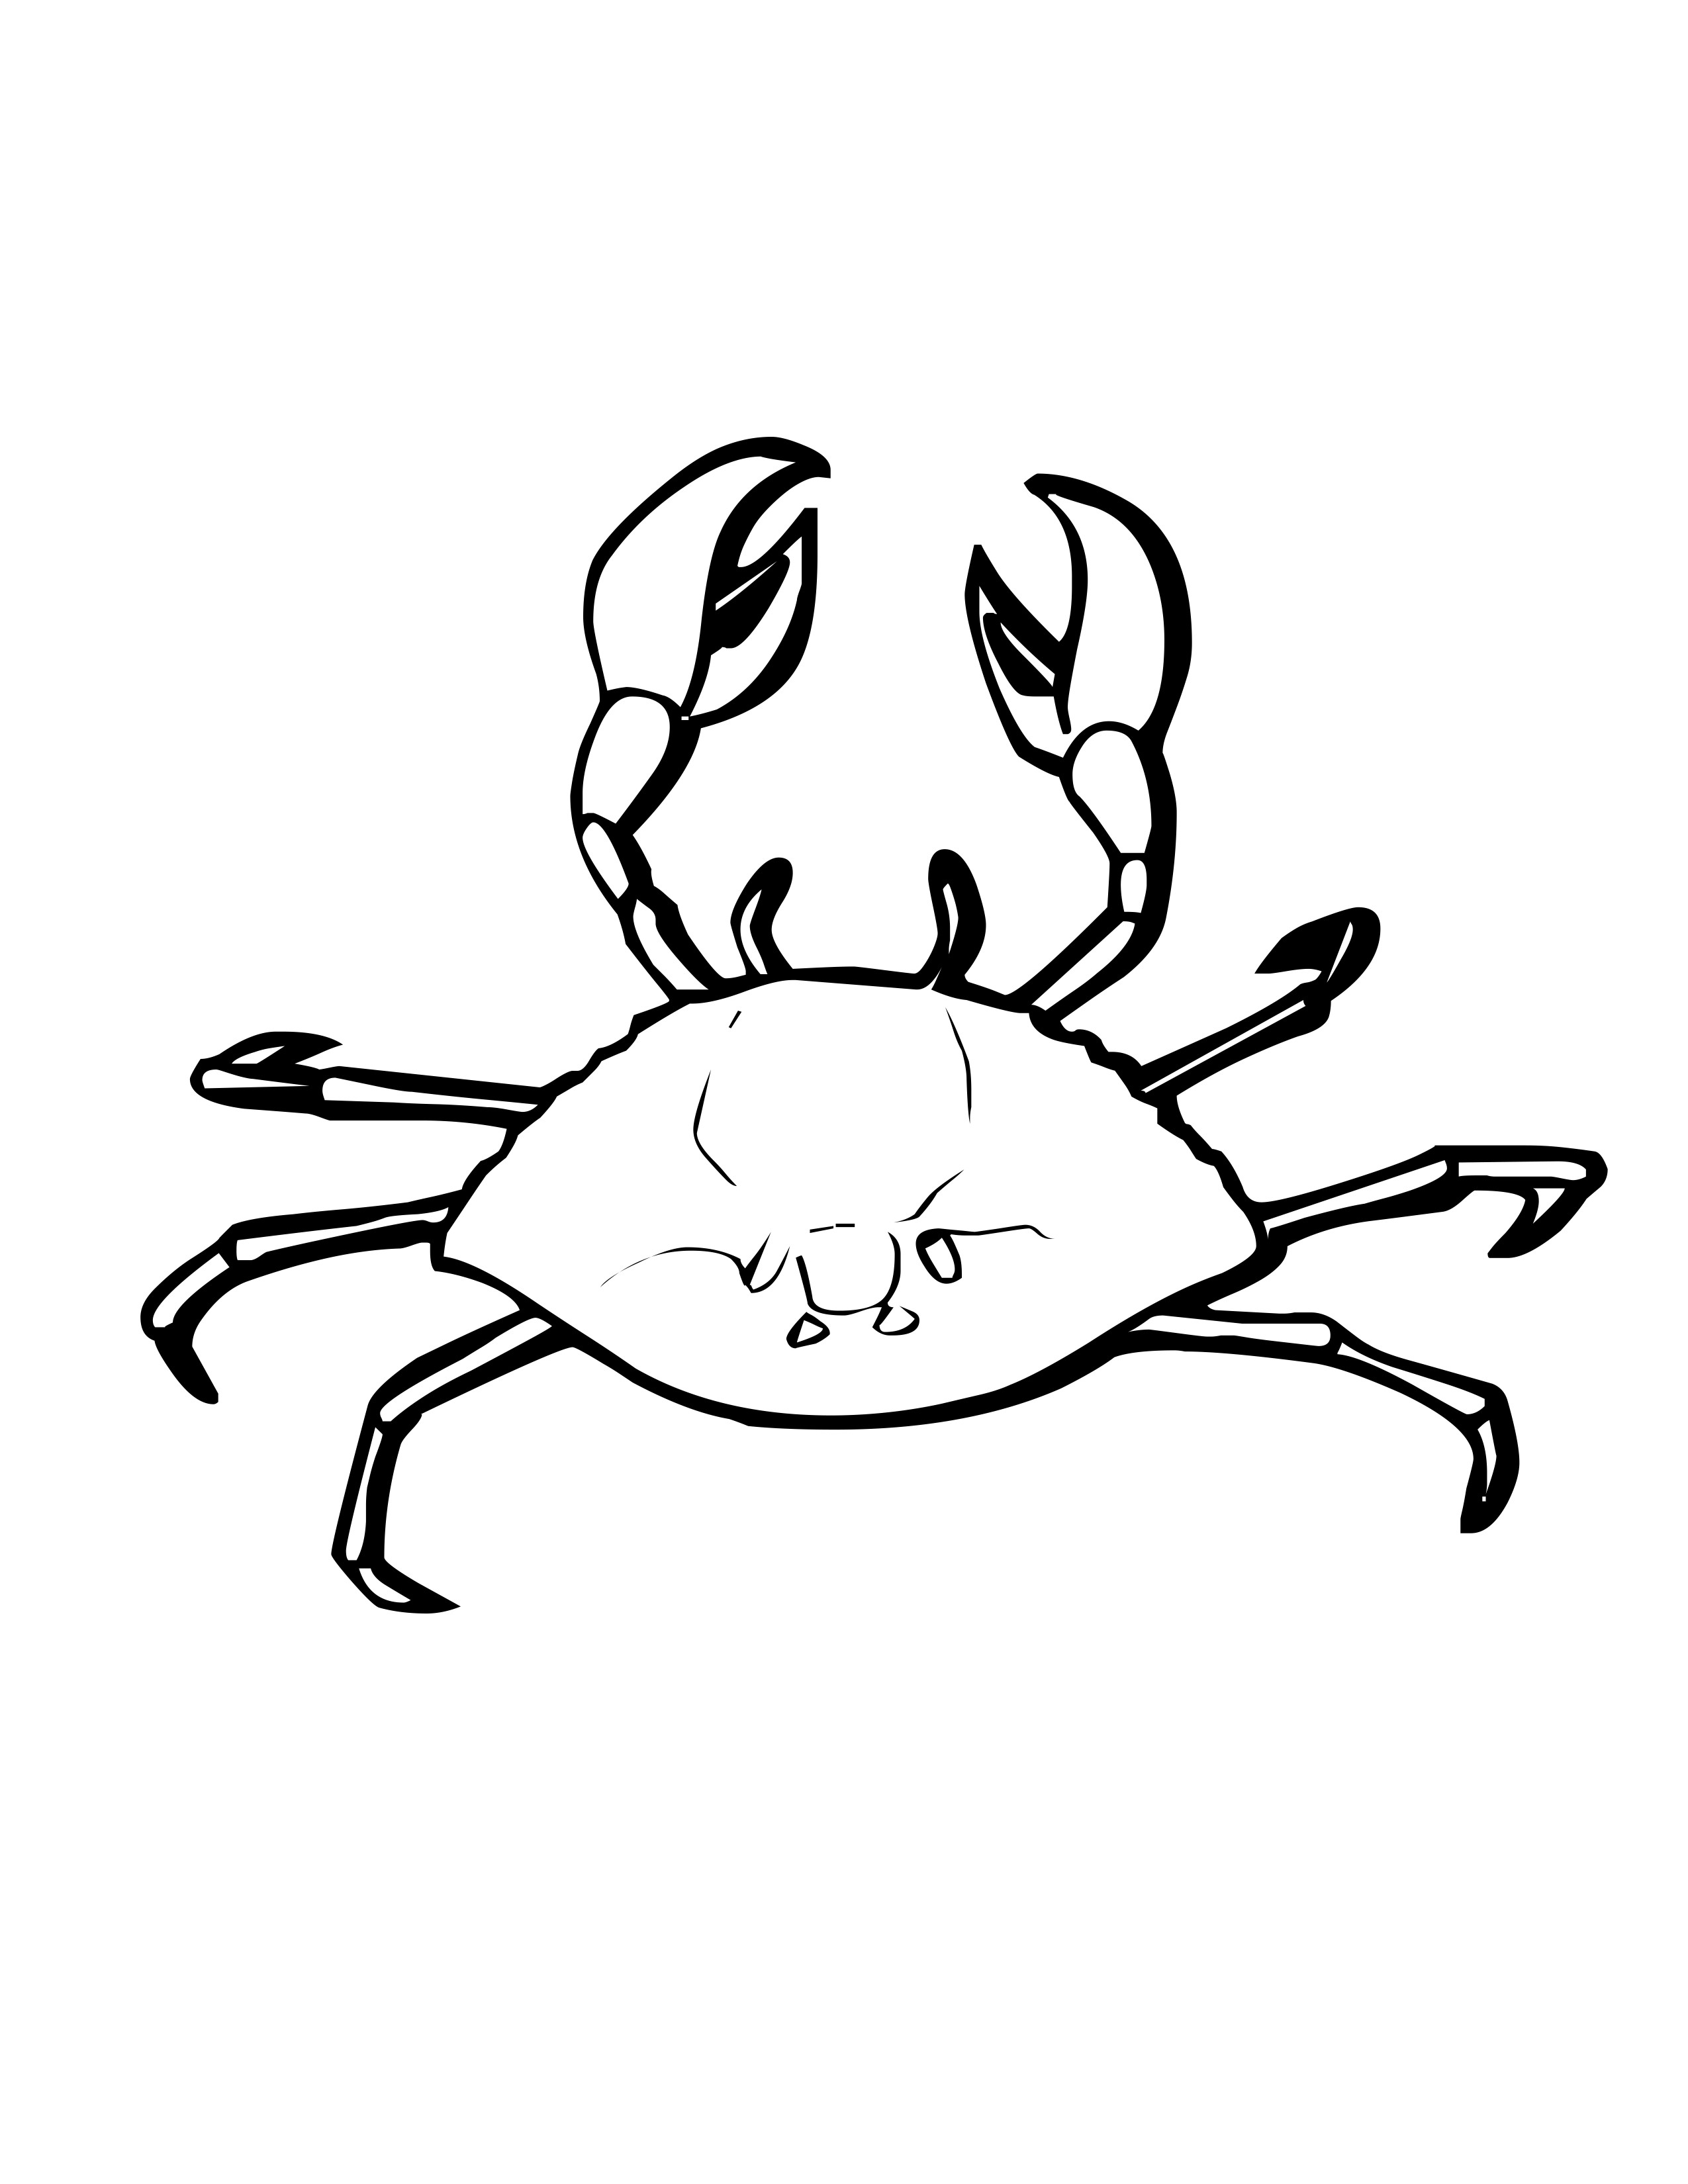 crabs coloring pages free printable crab coloring pages for kids animal place coloring crabs pages